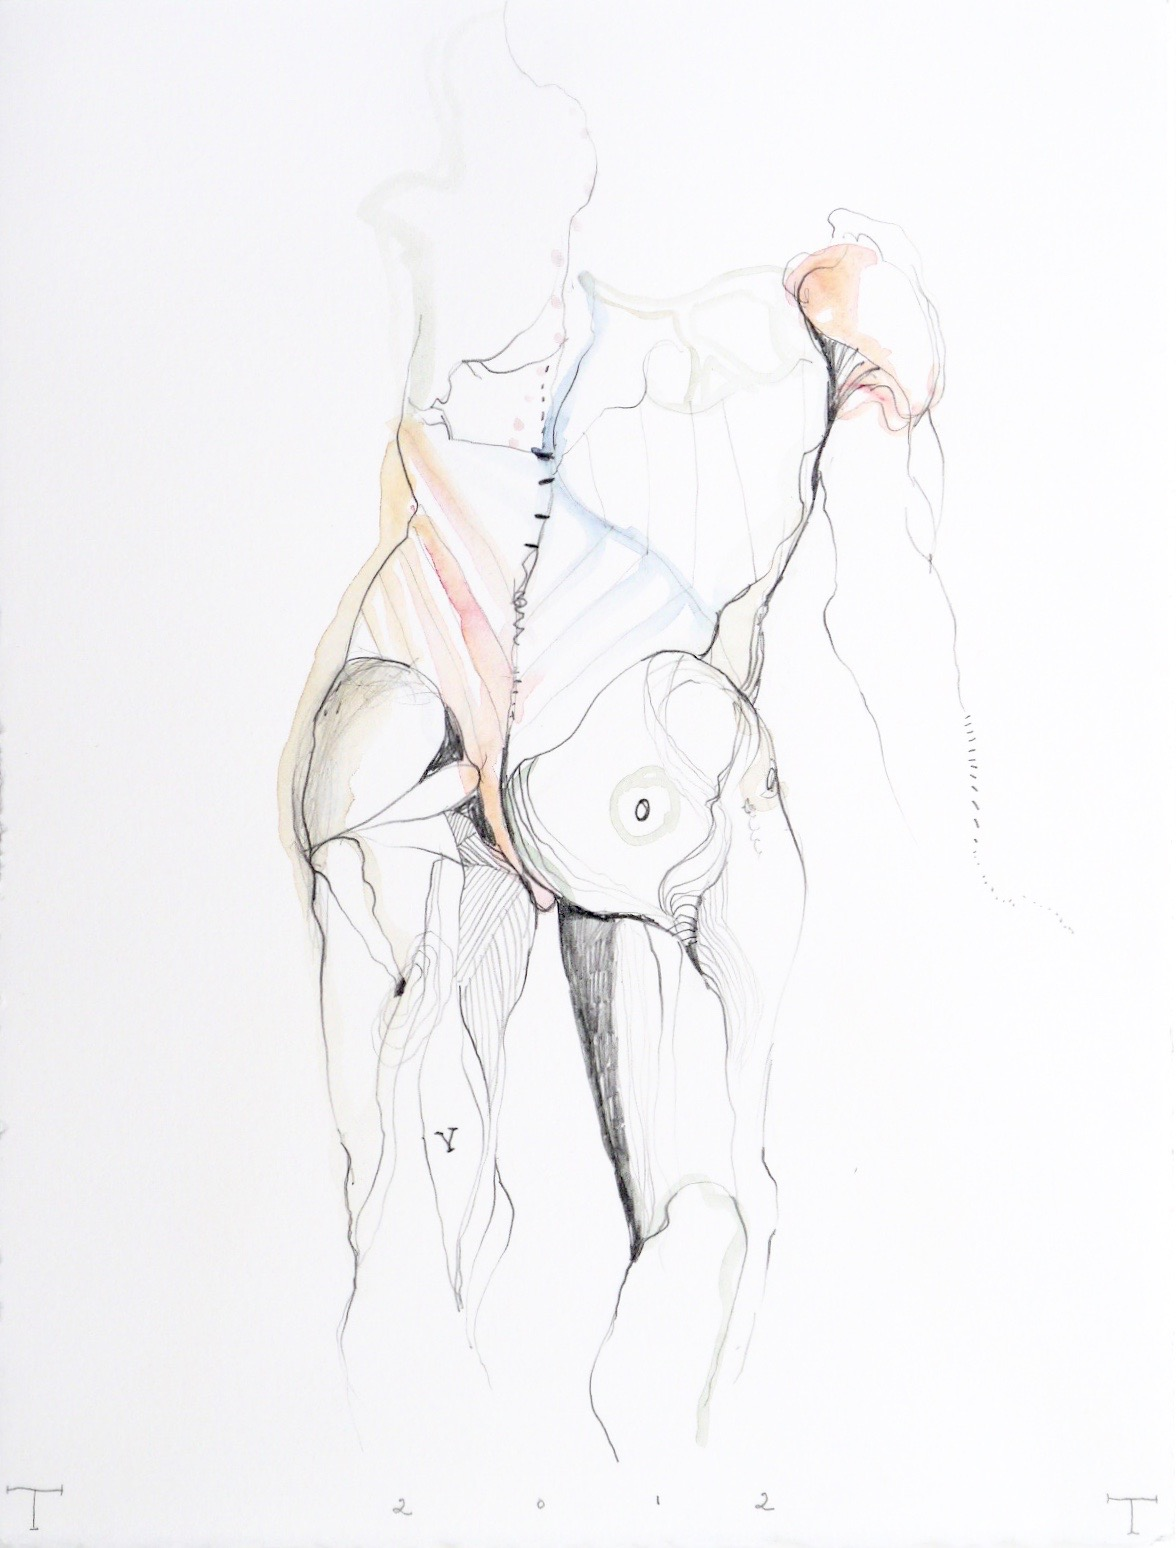 Vesalius study, mixed media on paper, 33 X 25 cm, 2013